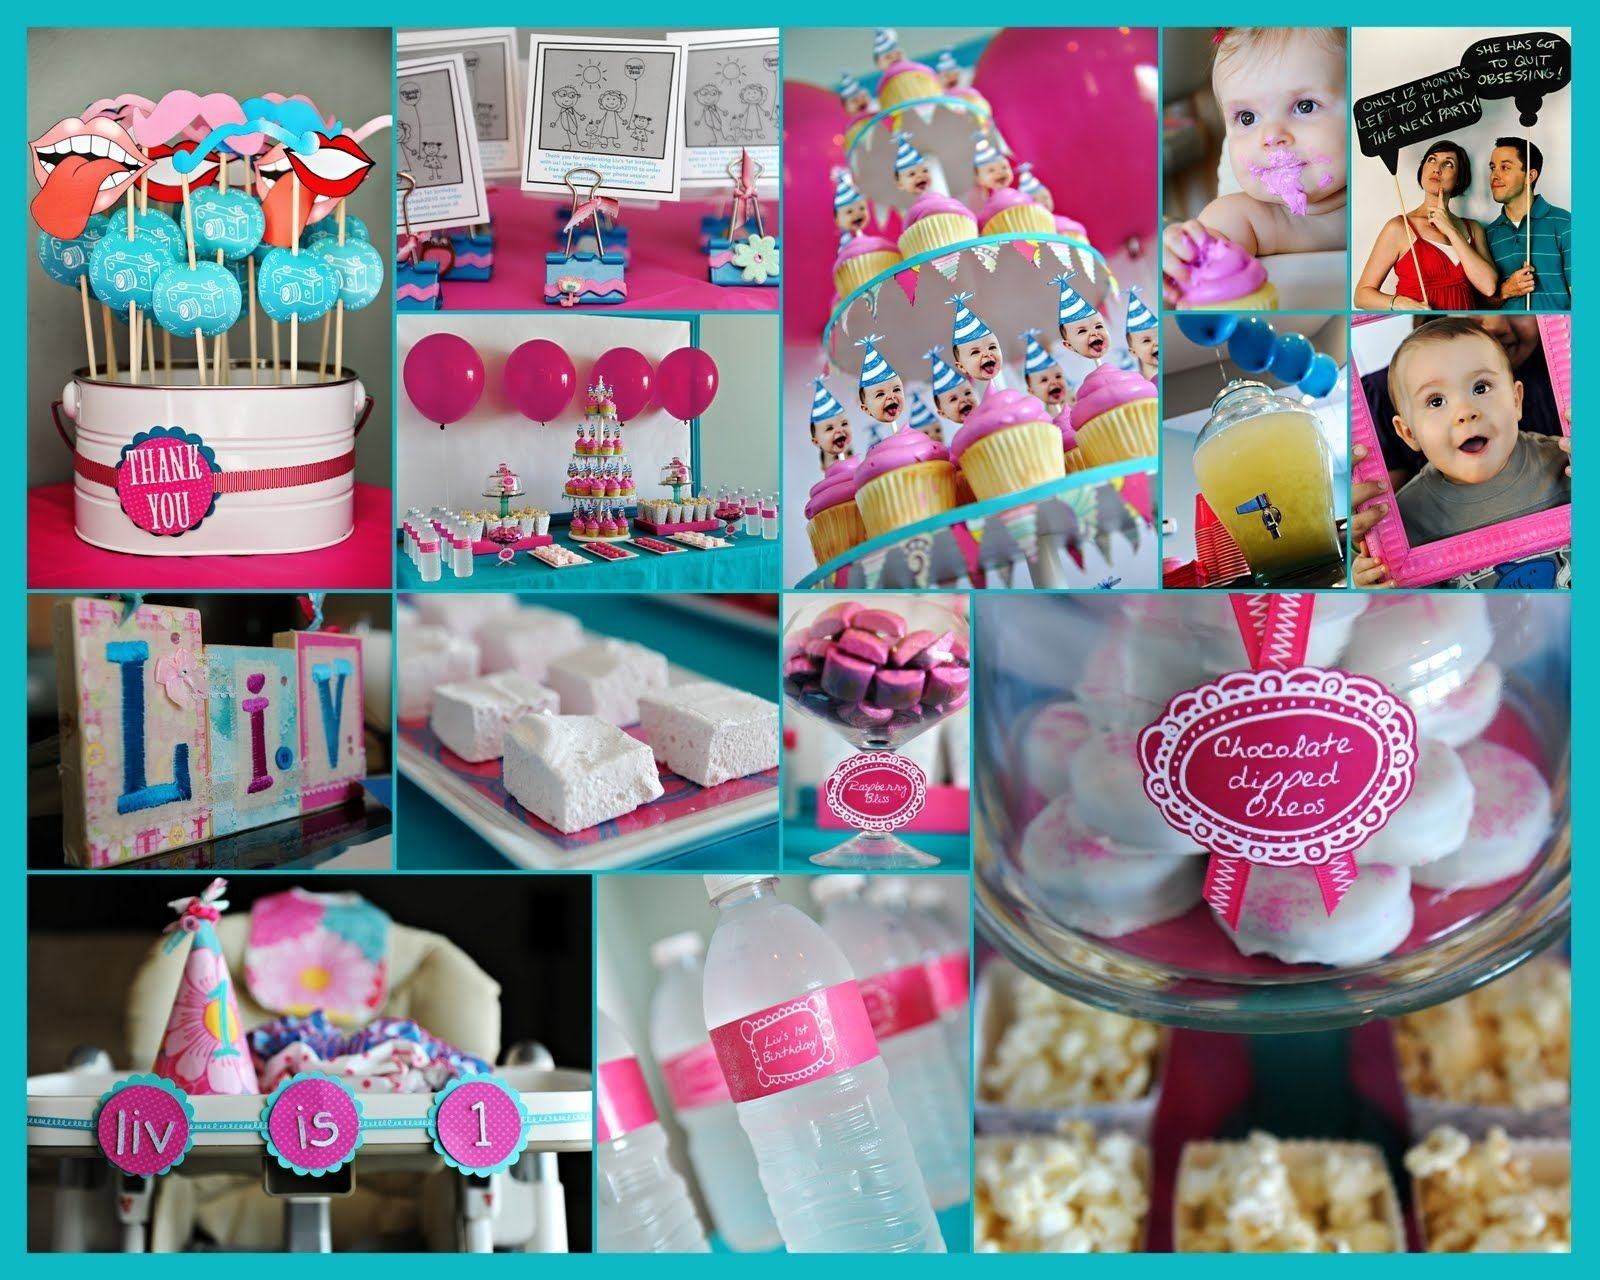 10 Perfect One Year Old Birthday Party Ideas one of a kind birthday ideas elle belle creative one year old in 2020